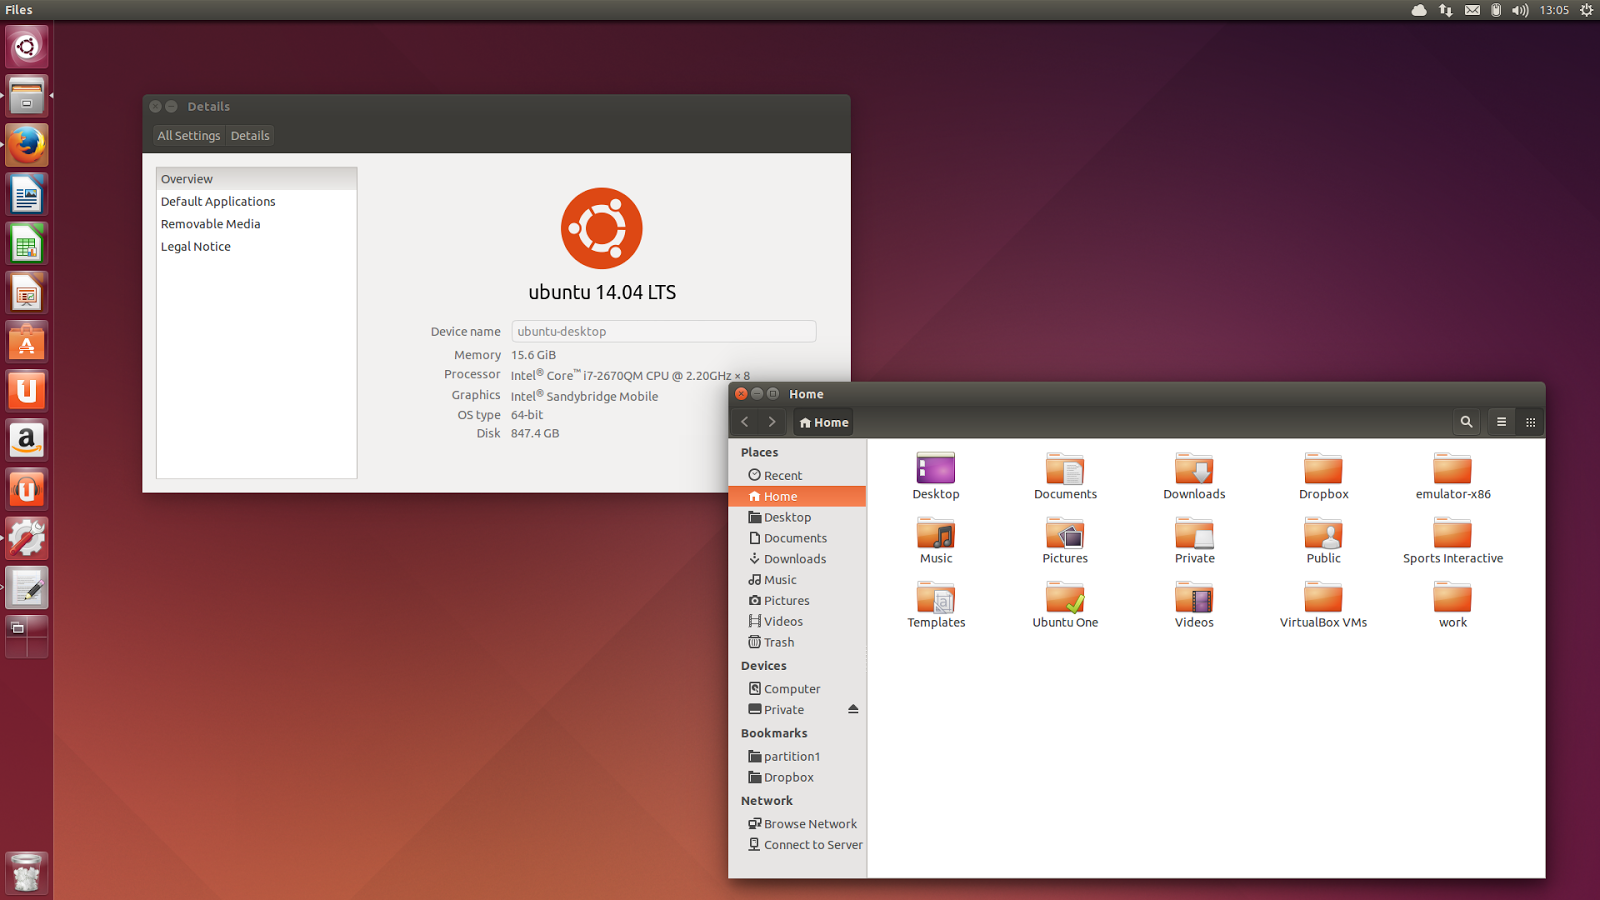 Ubuntu 14.04 raspberry pi 3 download